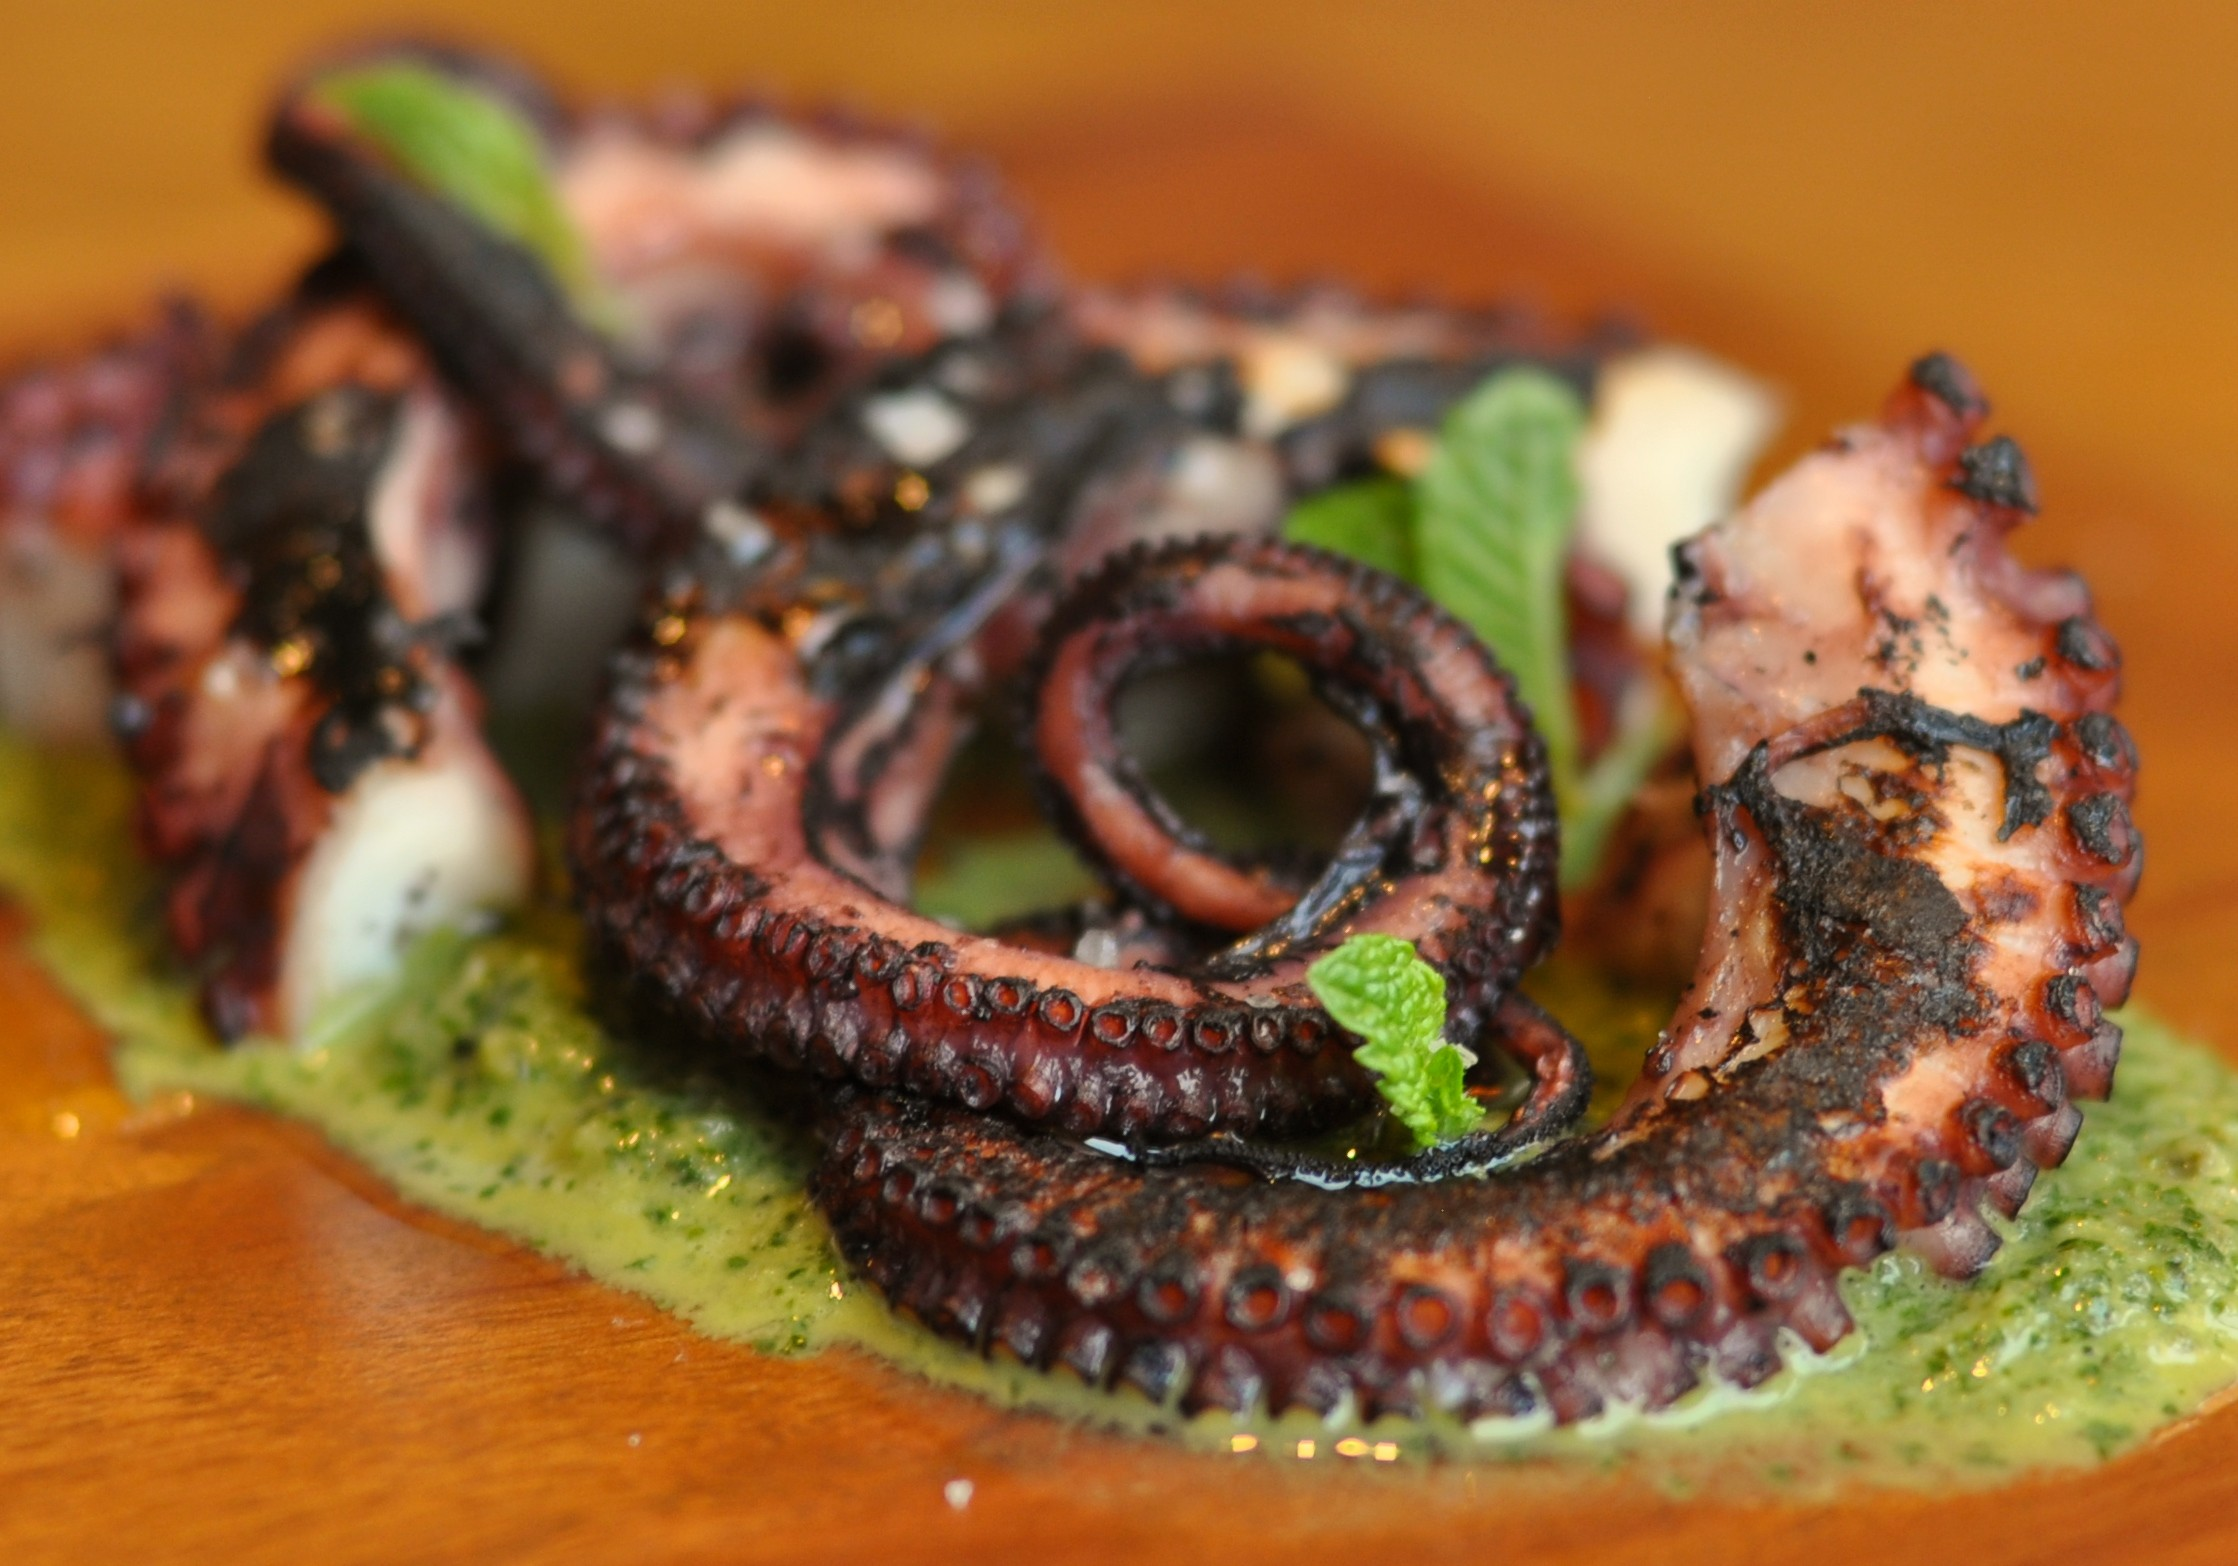 mid week menu salsipuedes opens odd bagel launches online click to enlarge an octopus dish from the popup incarnation of salsipuedes jay porter